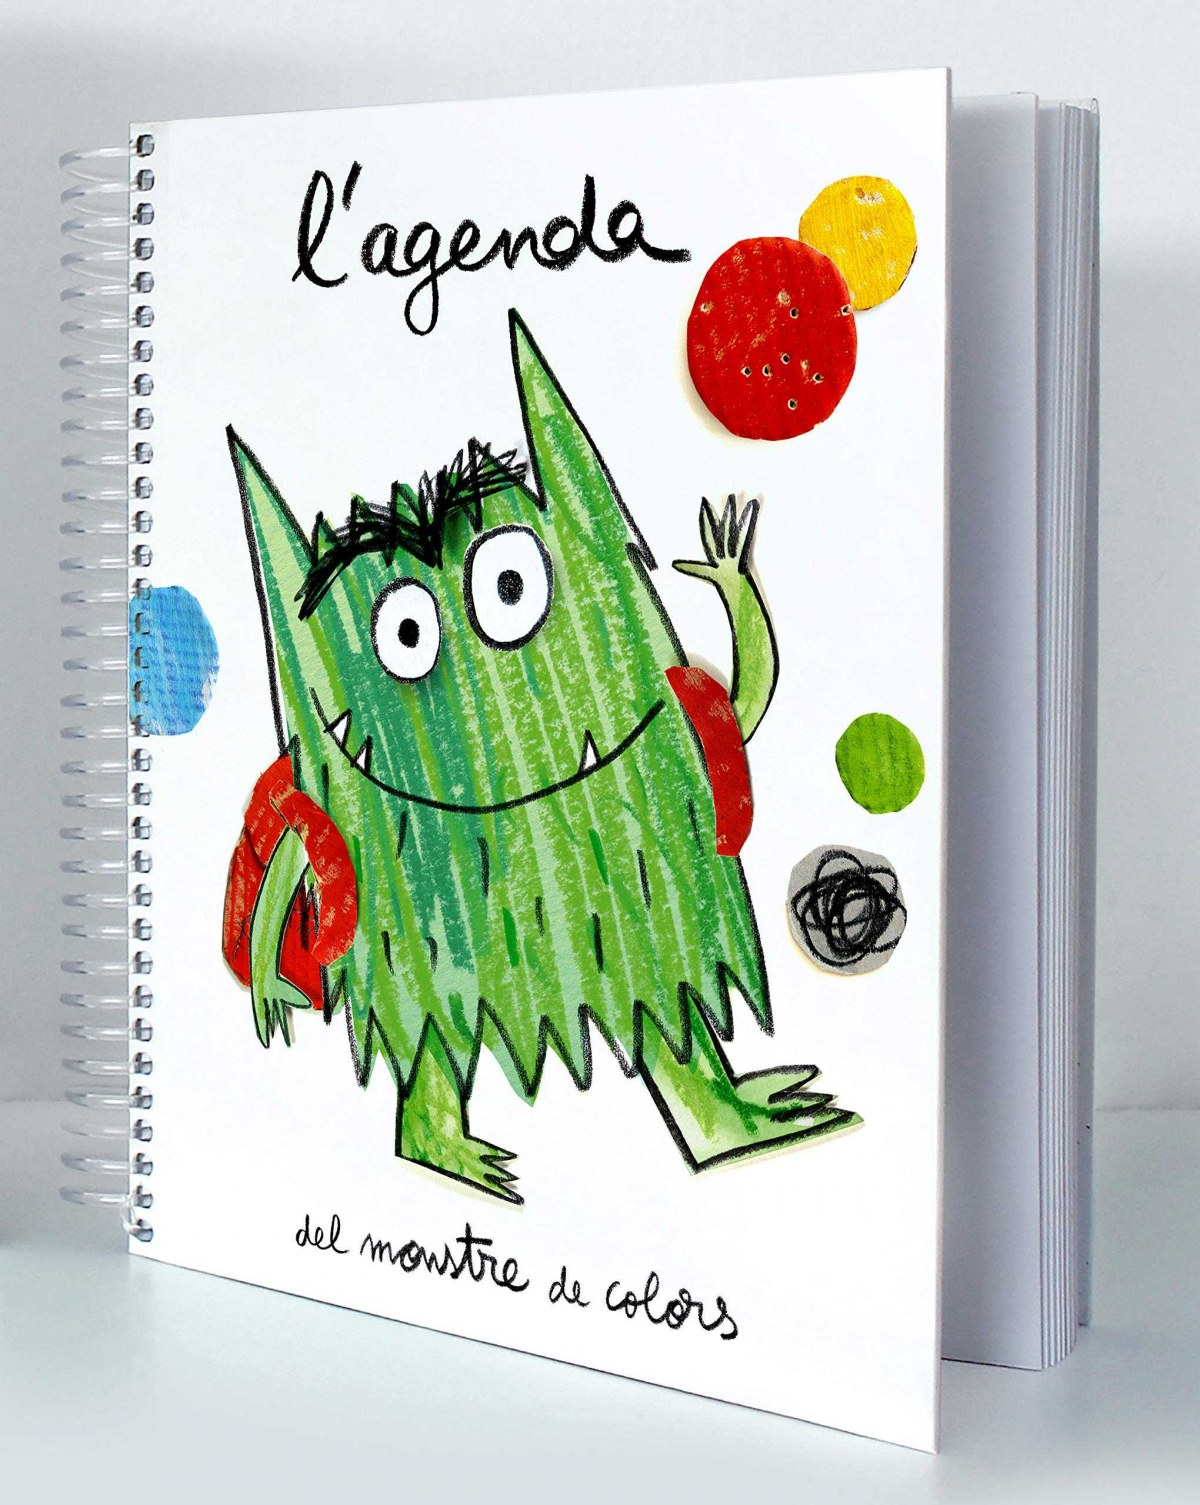 L´AGENDA DEL MONSTRE DE COLOR